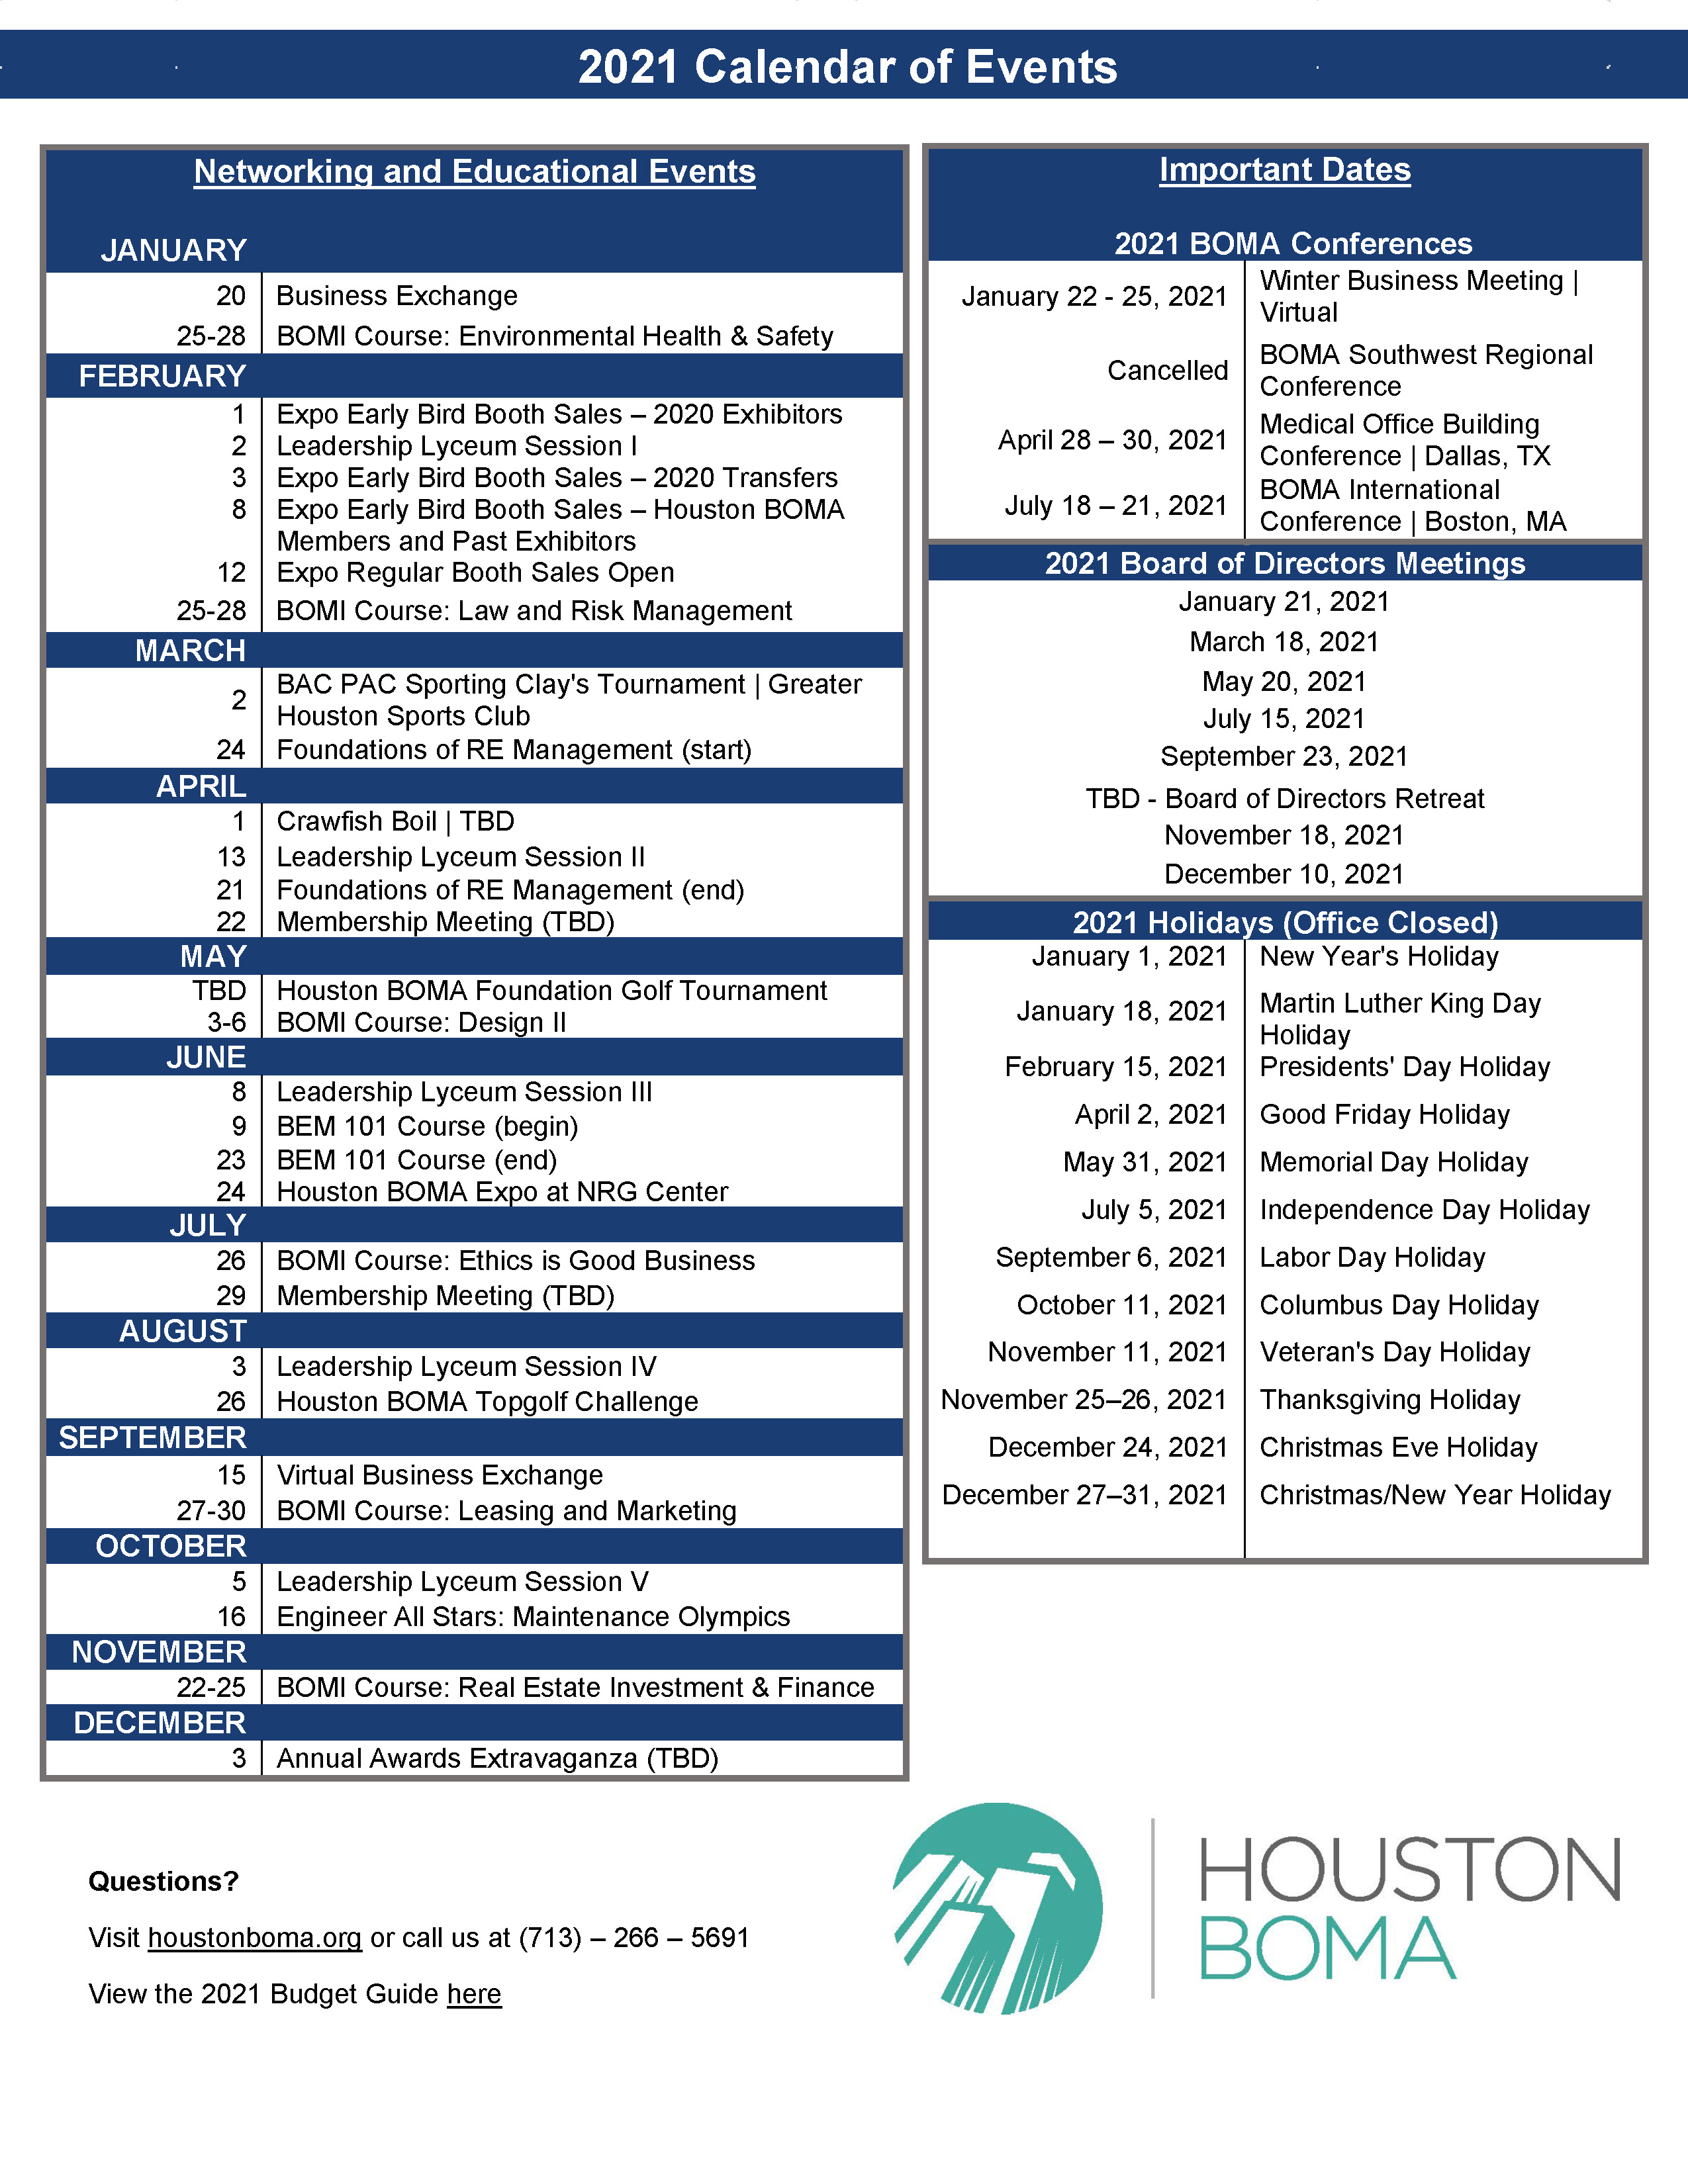 Houston Calendar Of Events 2021 Images